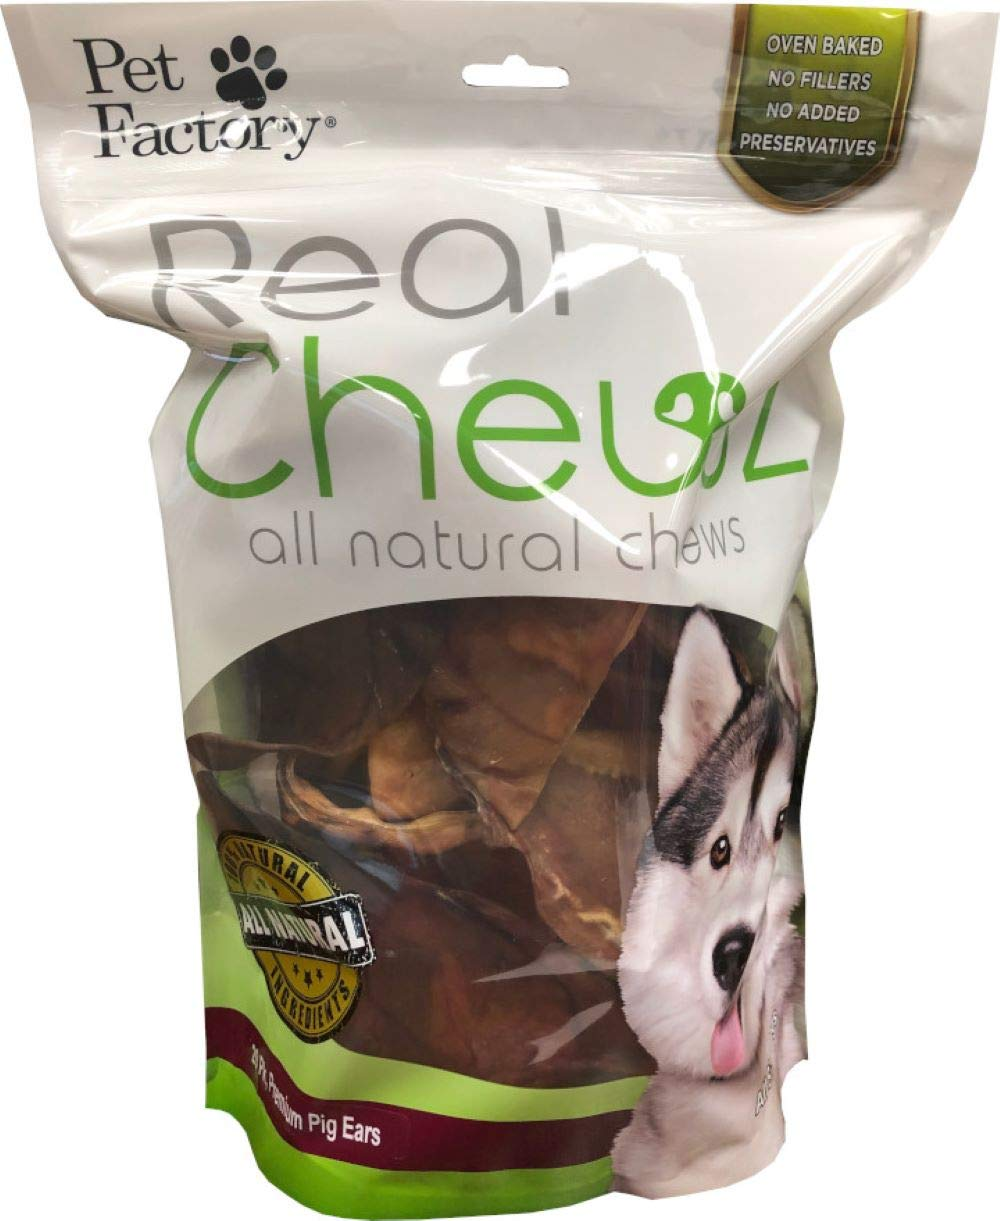 Pet Factory Real Chewz 18208 All-Natural, Premium Pig Ear Dog Chews (20 Pack) - Grain-Free, No Added Preservatives, Single-Ingredient Dog Treats, No Fillers, Oven Baked.